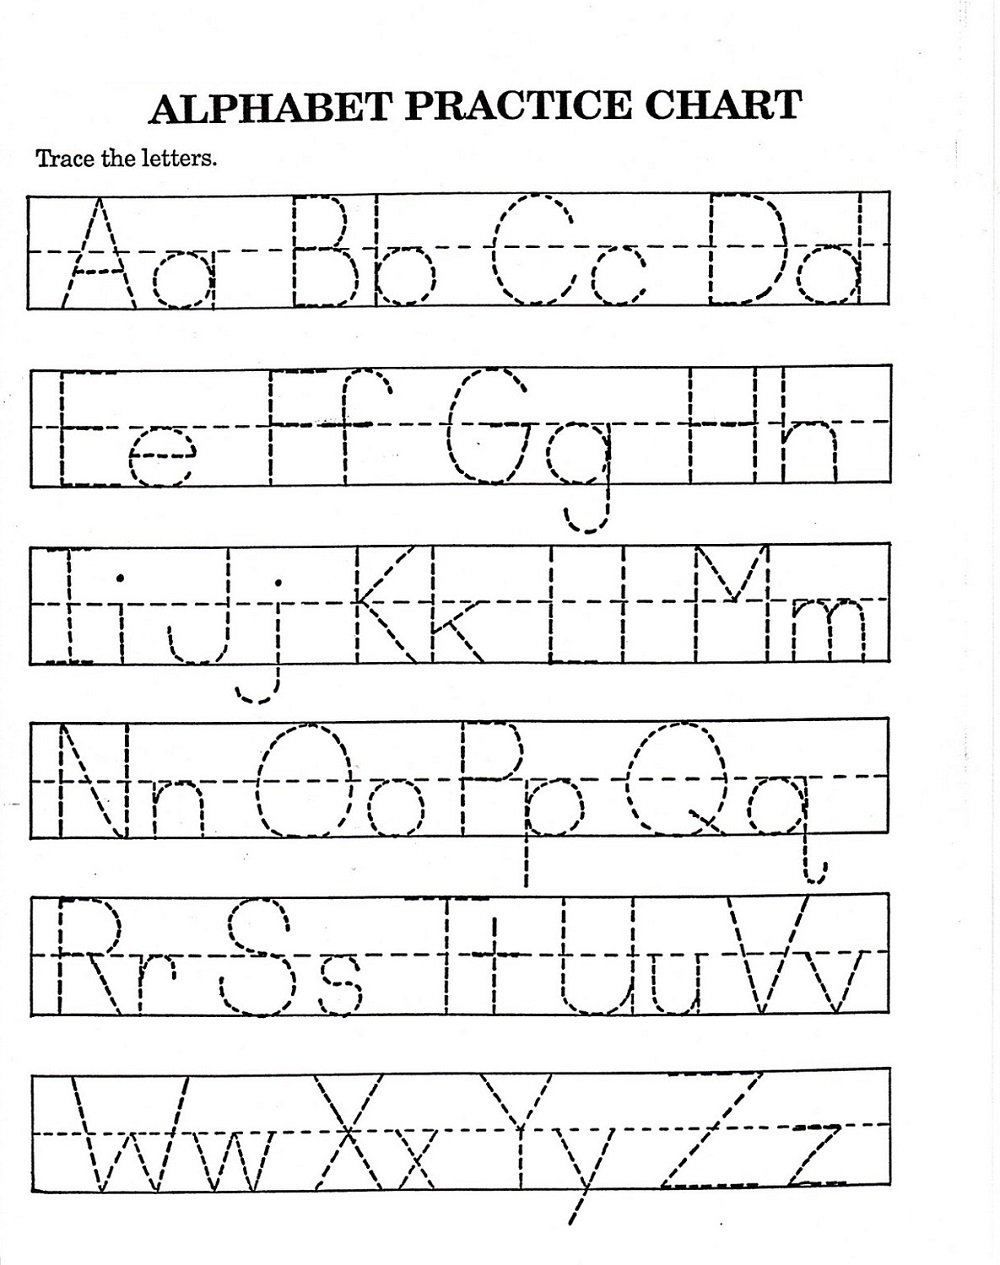 Alphabet Tracing For Kids A-Z | Activity Shelter in Alphabet Tracing Worksheets A-Z